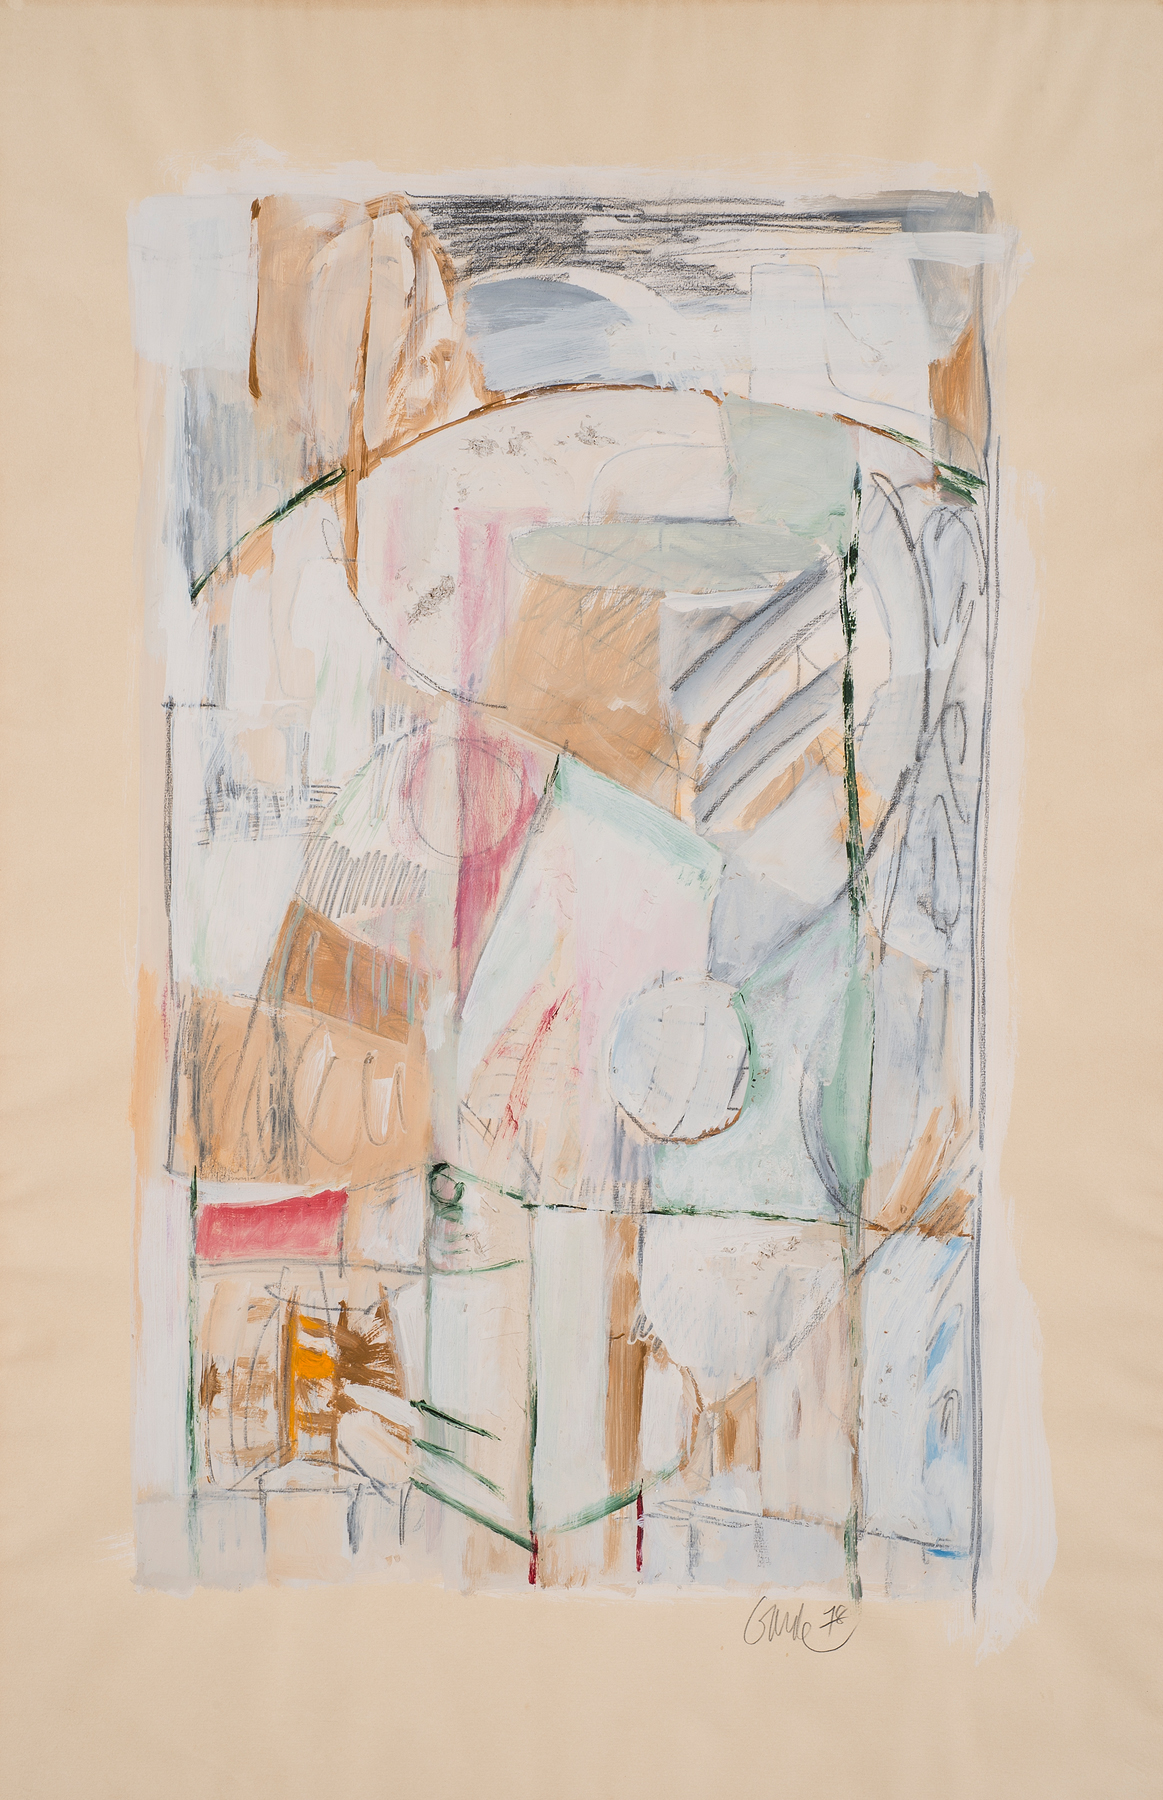 Linear Nonfigurative , 1978. Acrylic, pencil, wood shavings on paper, 42 x 27 in. (107 x 68.6 cm.)